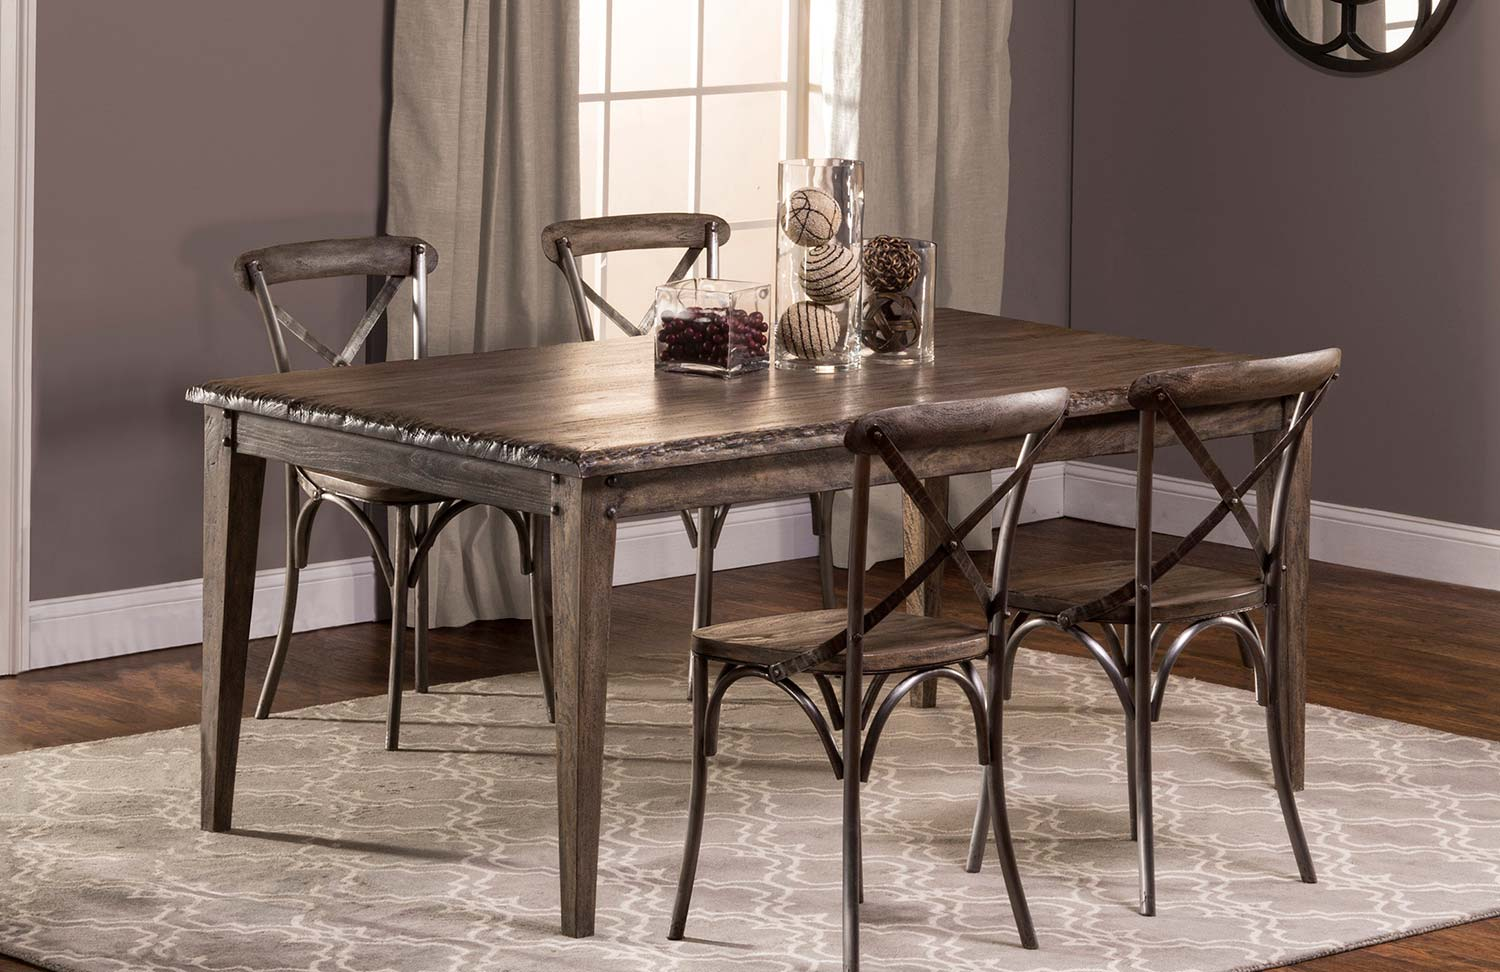 Hillsdale Lorient 5 PC Rectangle Dining Set with X Back Chair - Washed Charcoal Gray/Black